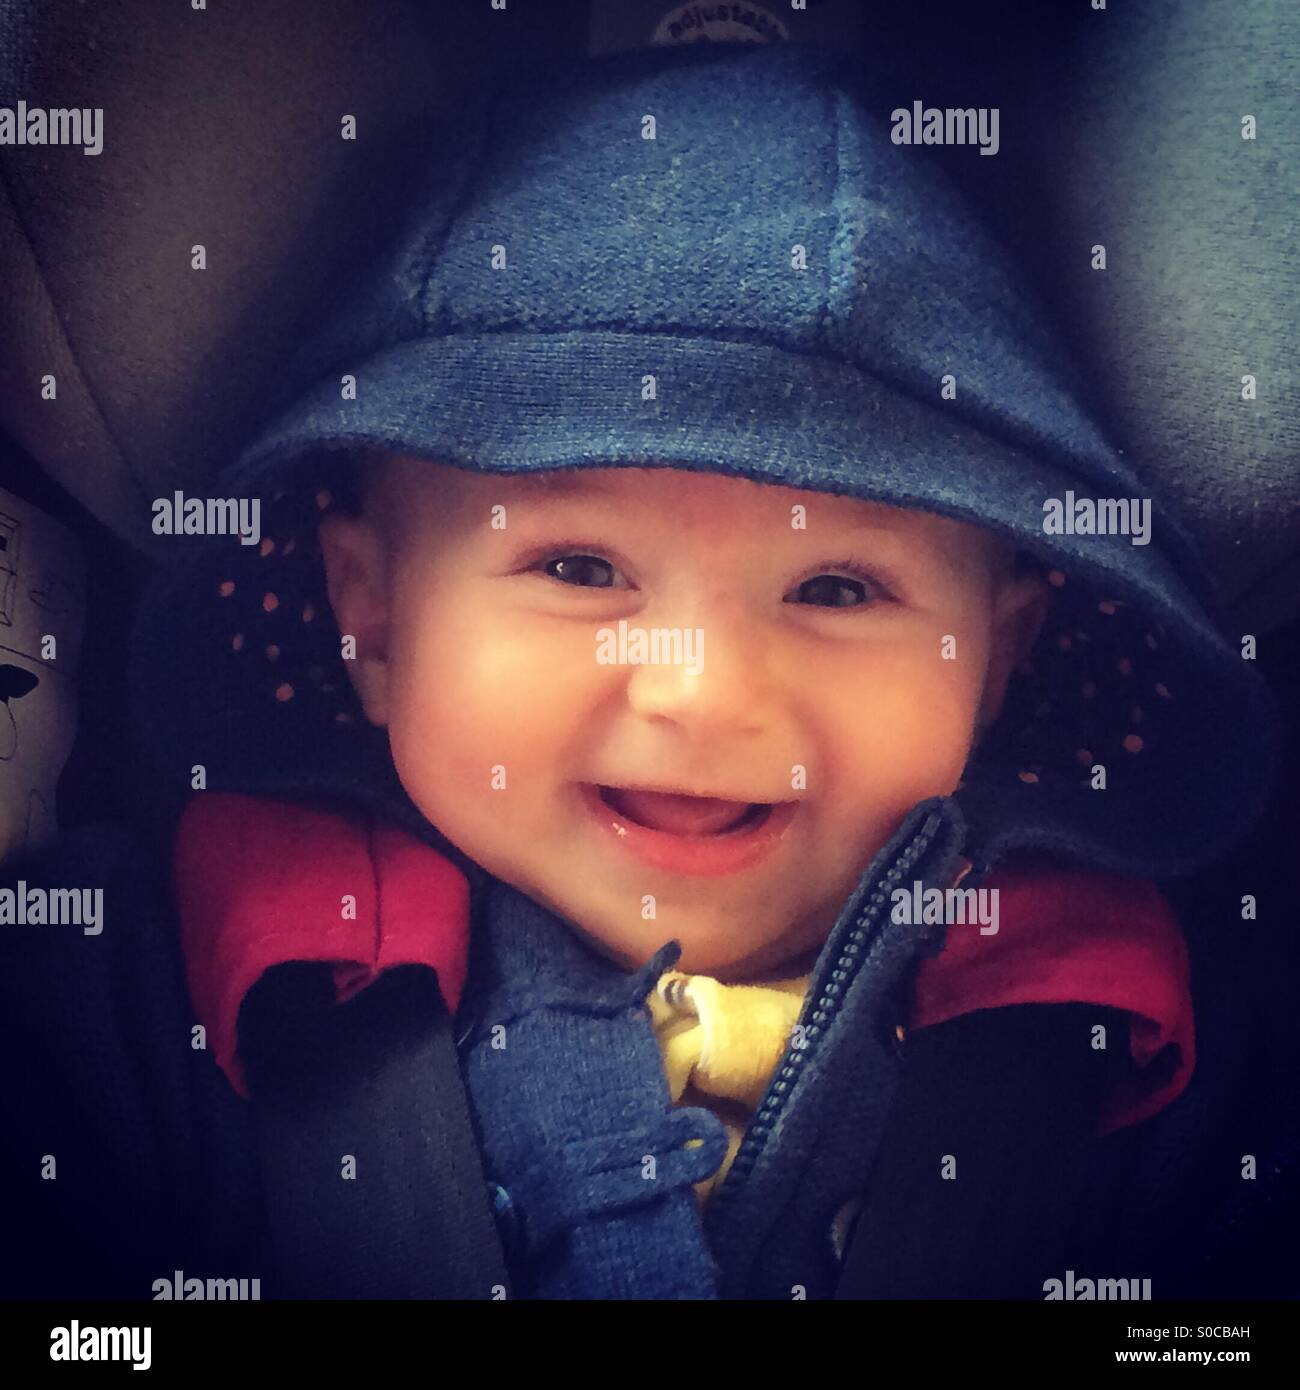 Child smiling in car seat - Stock Image